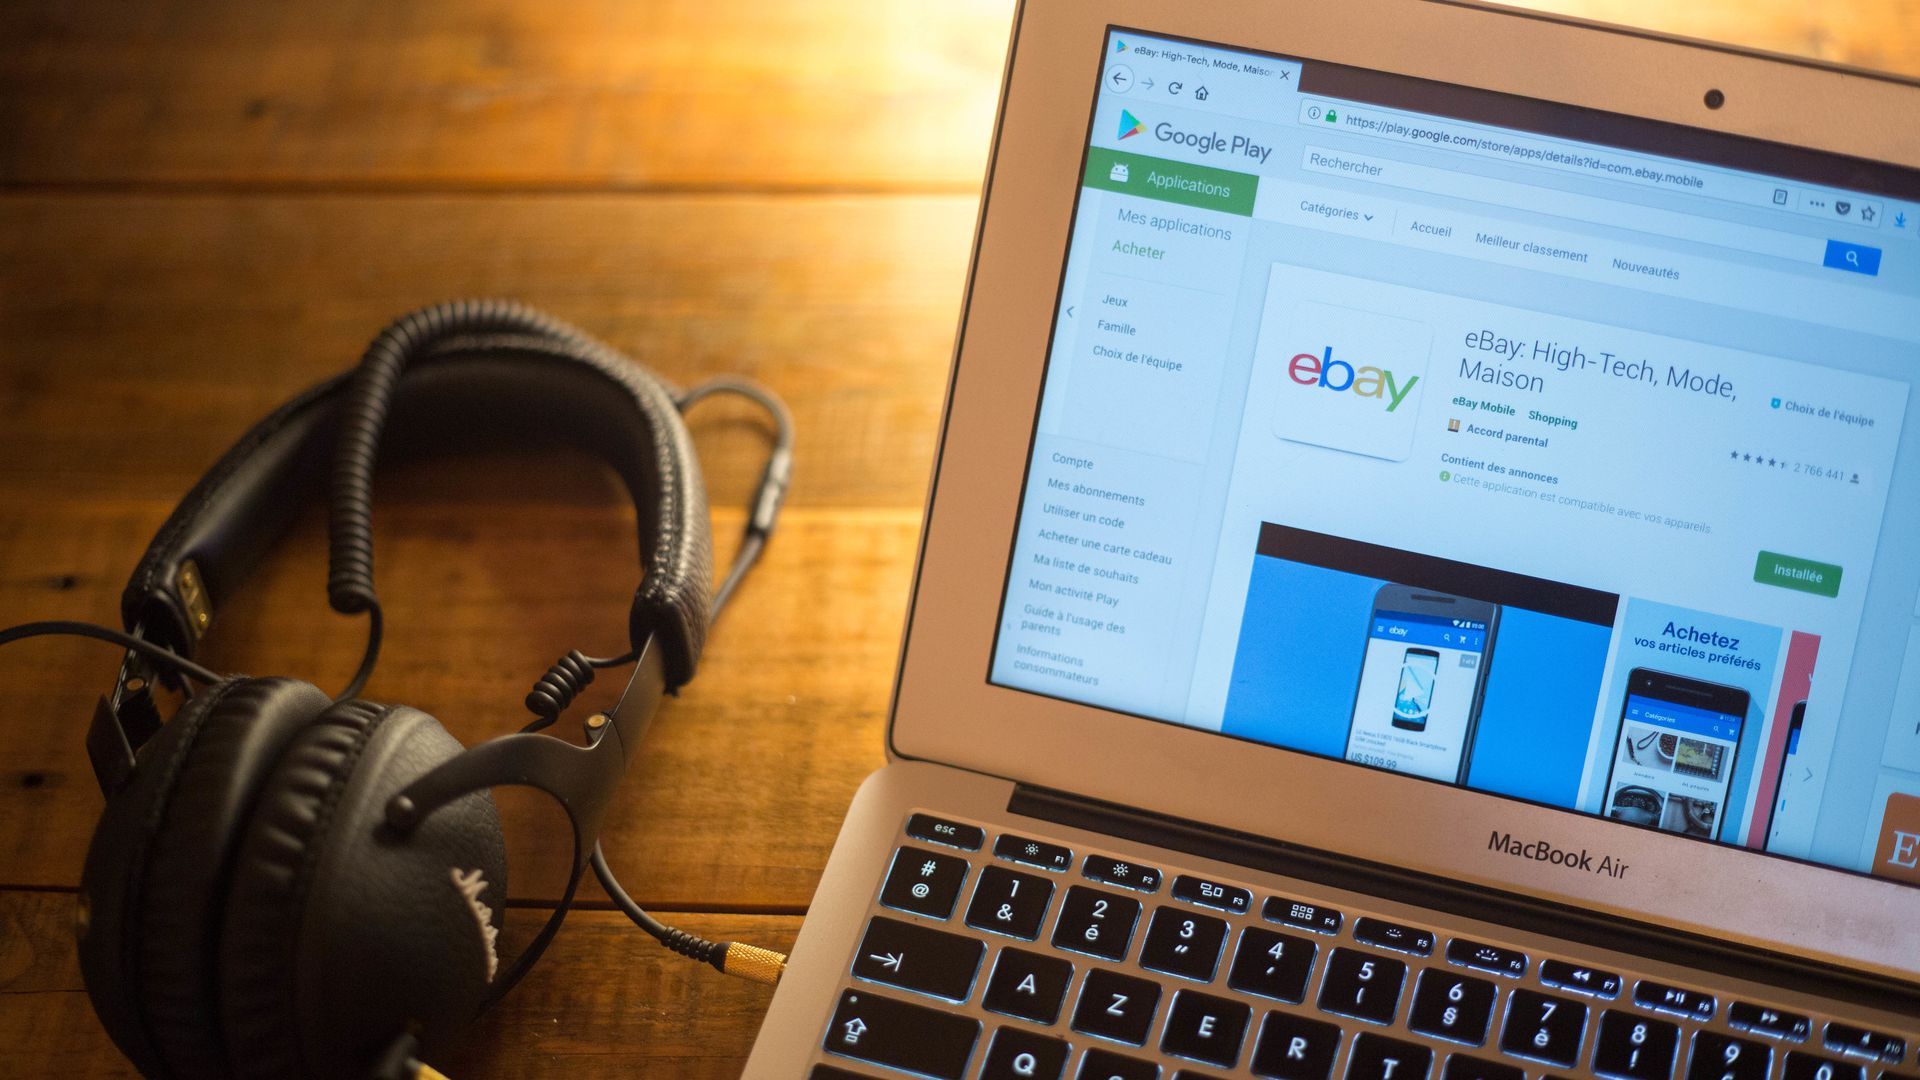 Ebay plans to start accepting apple pay axios ebay app on a macbook air gumiabroncs Gallery